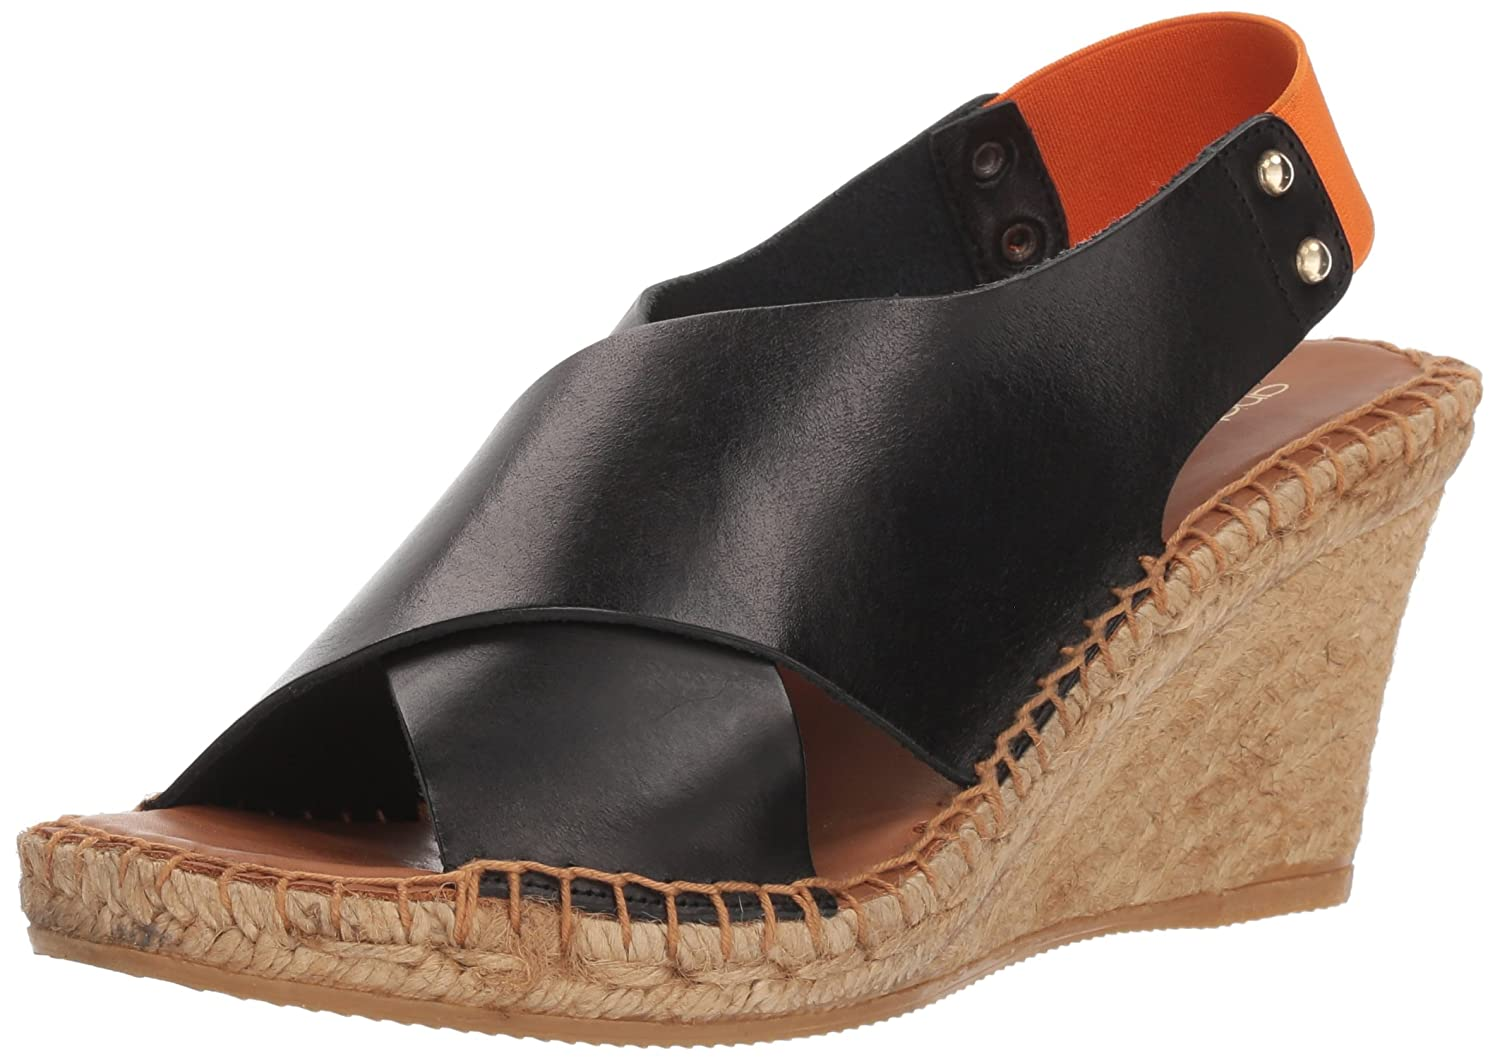 André Assous Women's Allie Espadrille Wedge Sandal B078B51NLZ 8 B(M) US|Black